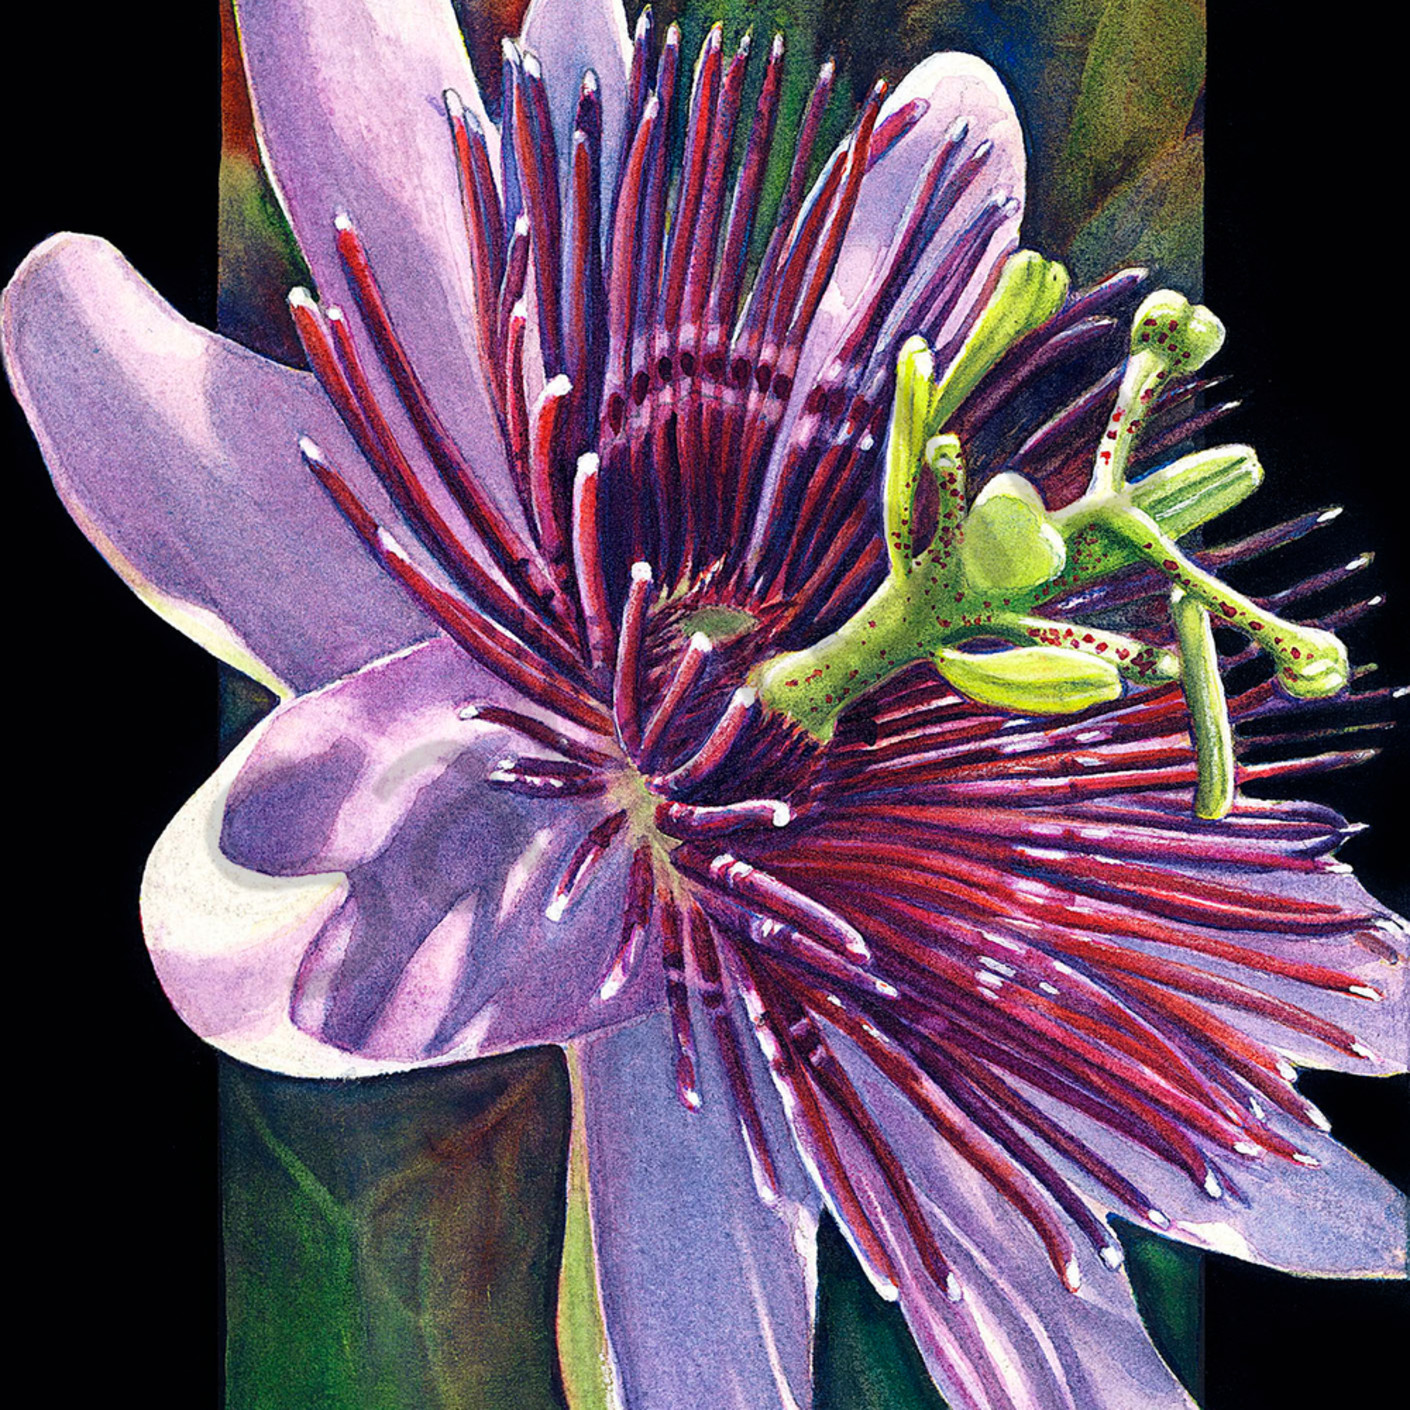 Passionflower lba20a